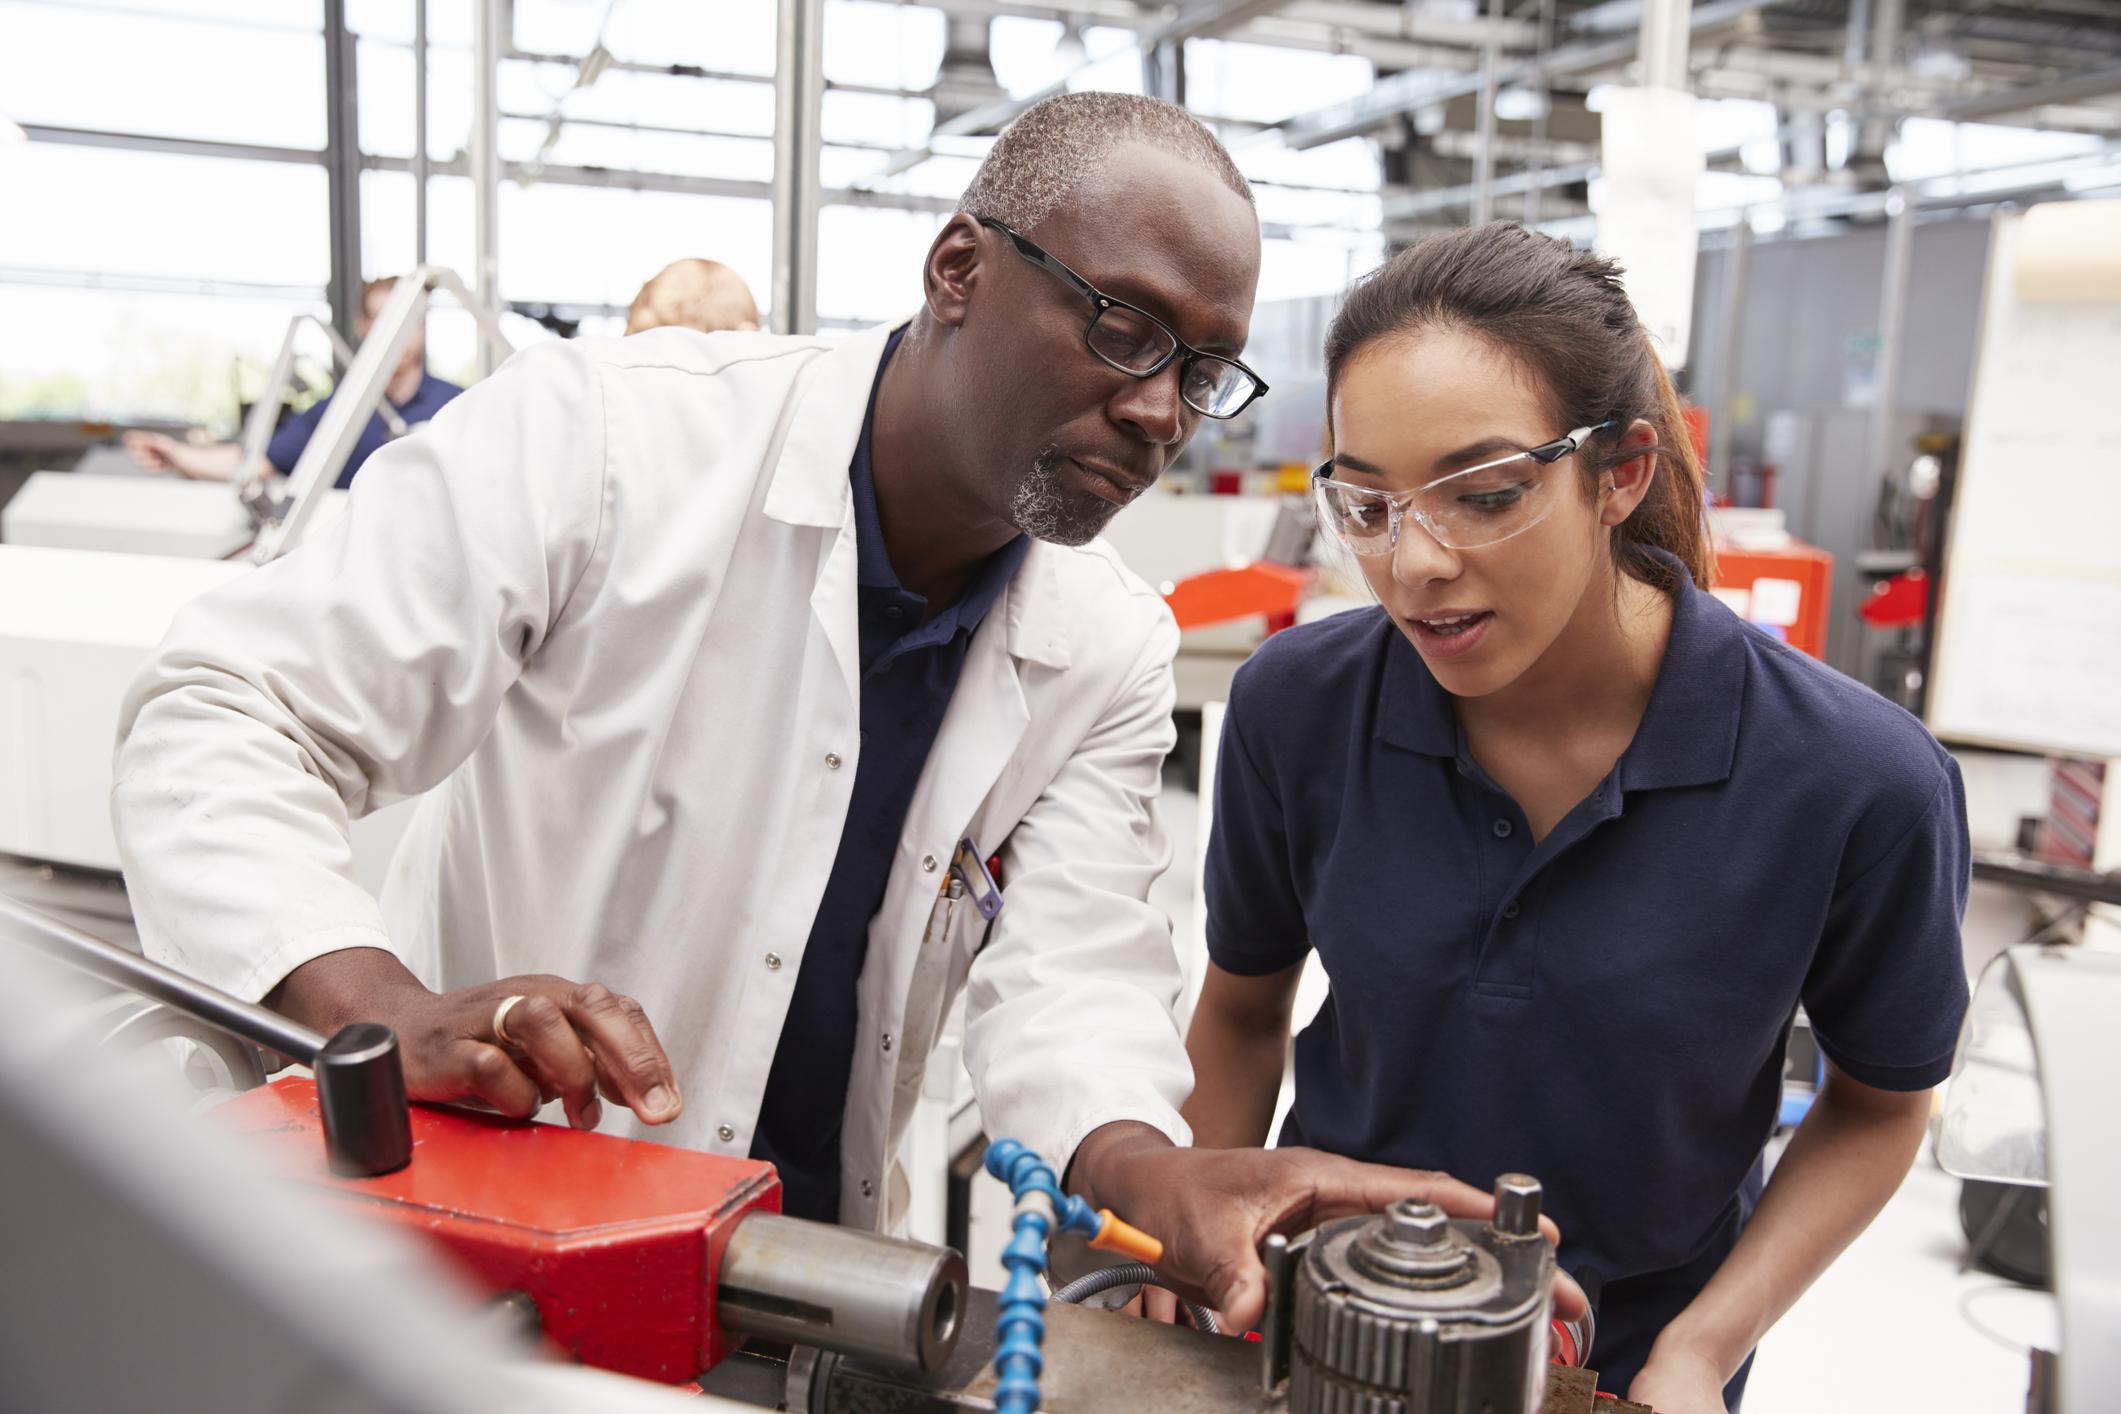 Engineer showing equipment to a female apprentice, close up